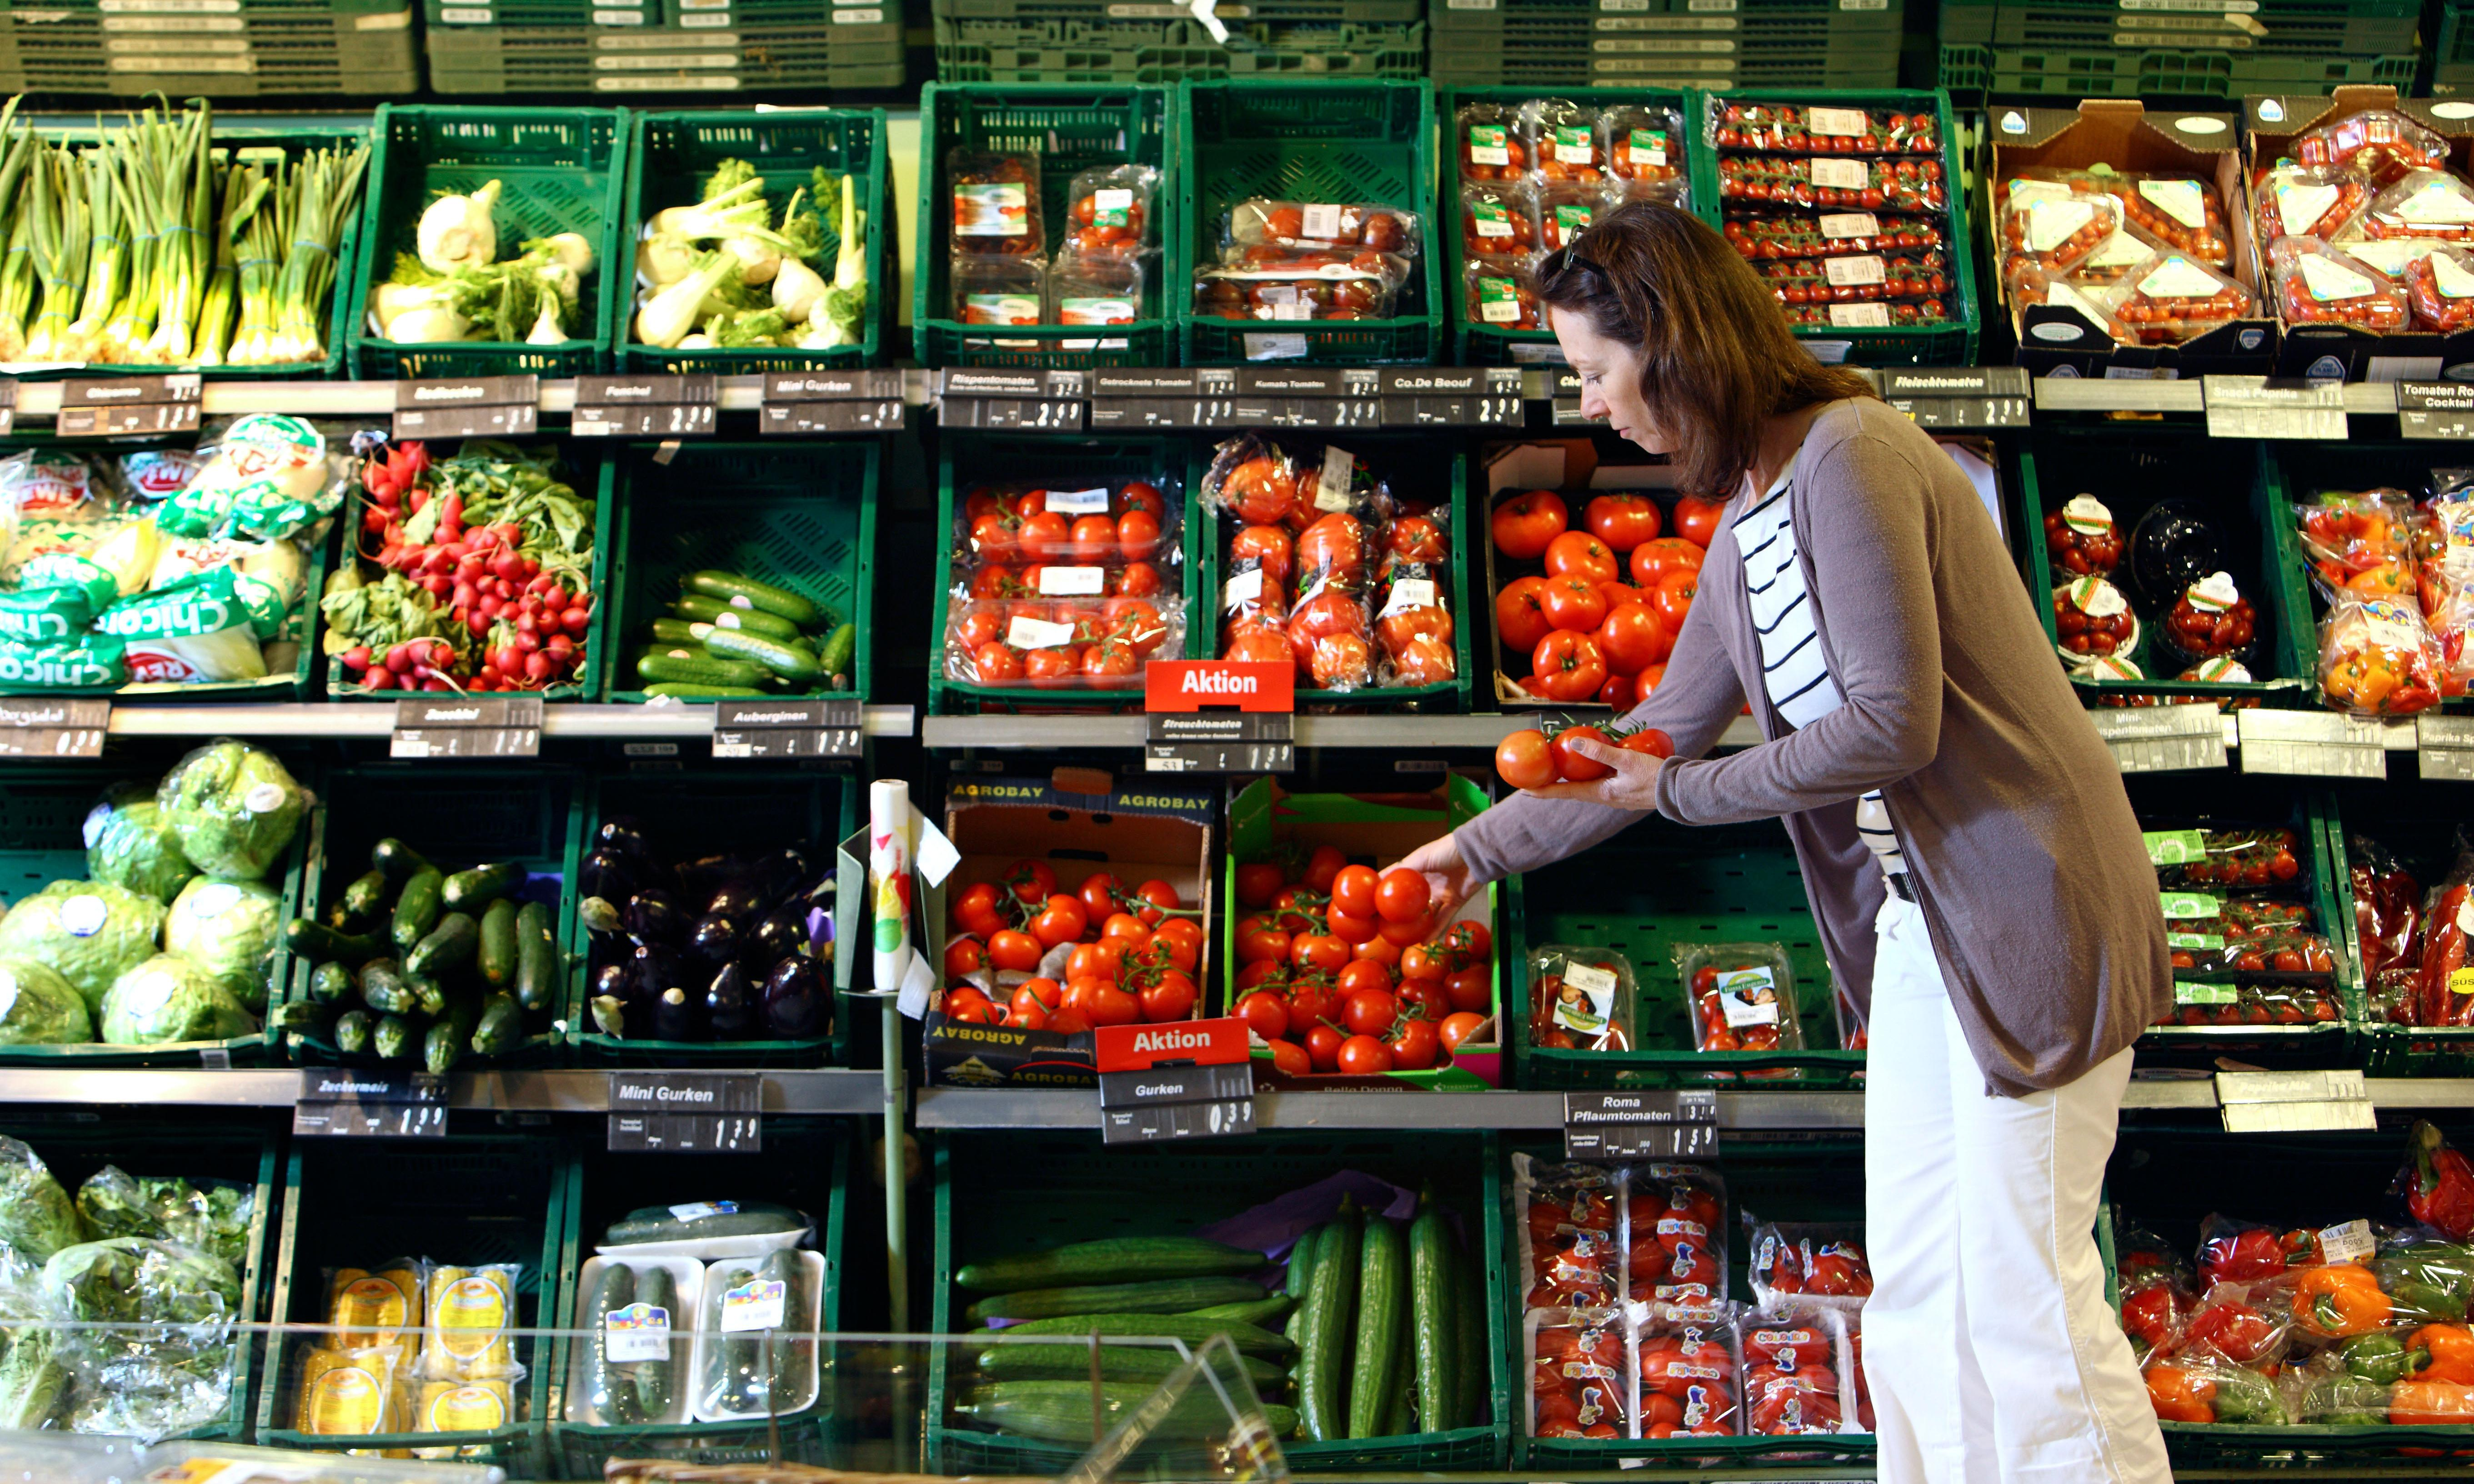 Being vegetarian 'lowers heart disease risk but increases chance of stroke'